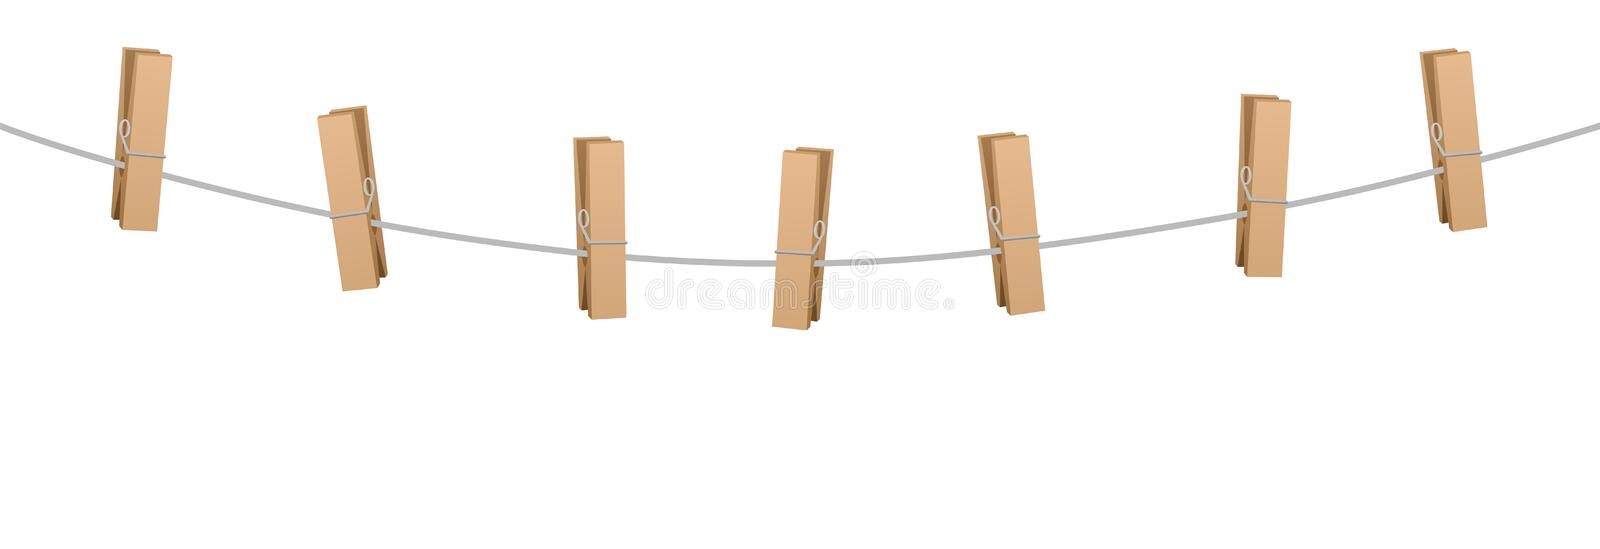 Clothes Pins Clothes Line Rope Seven Wooden Pegs. Clothes pins on a clothes line rope holding nothing royalty free illustration